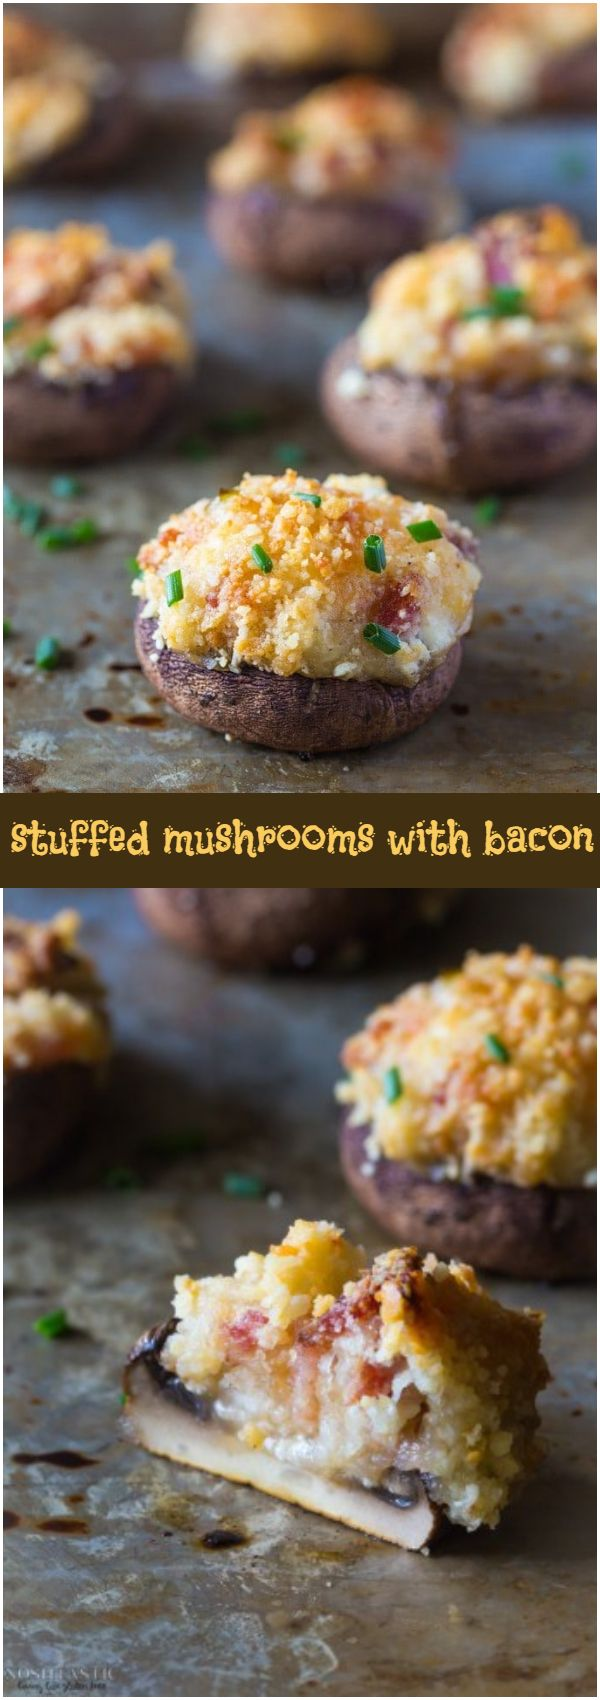 gluten free stuffed mushrooms with bacon